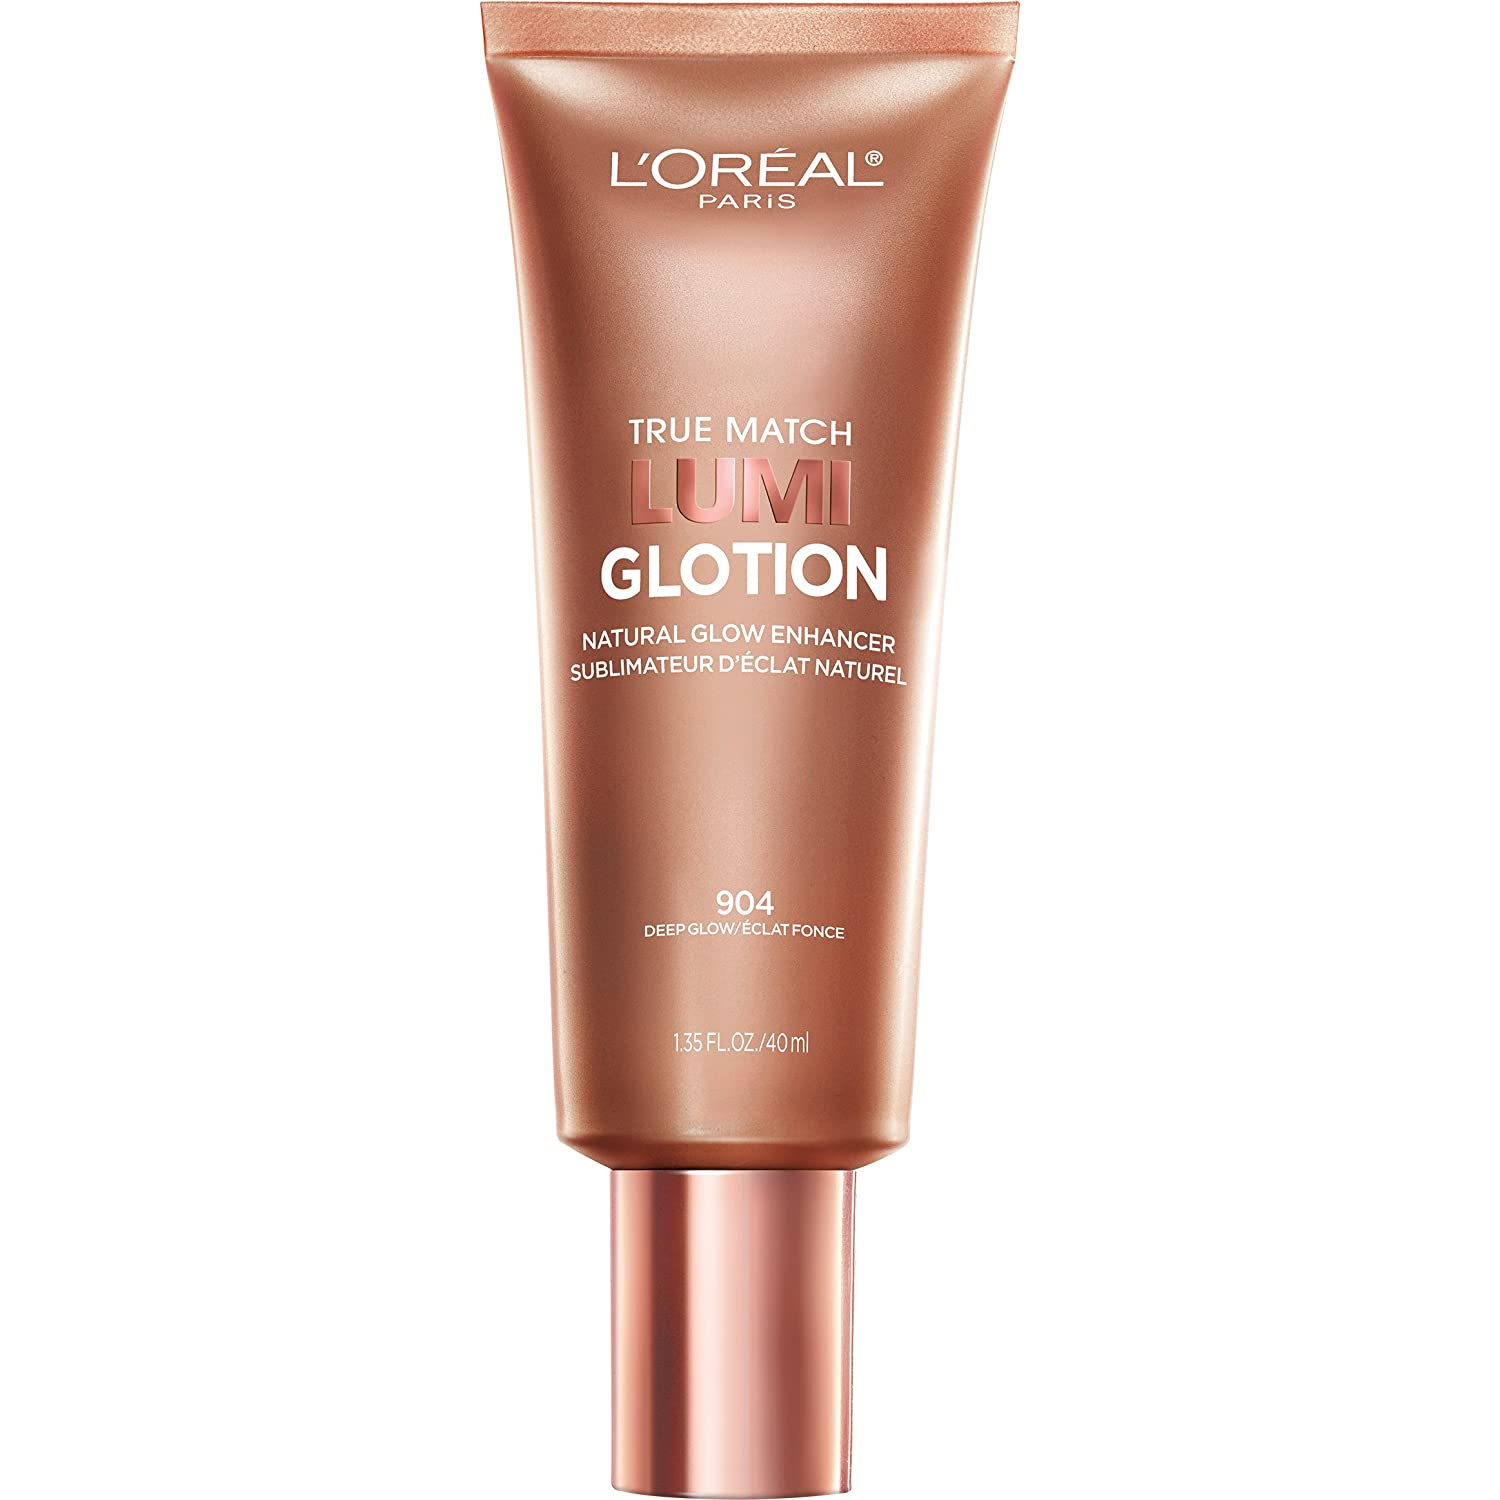 L'Oreal Paris Makeup True Match Lumi Glotion Natural Glow Enhancer Highlighting Lotion